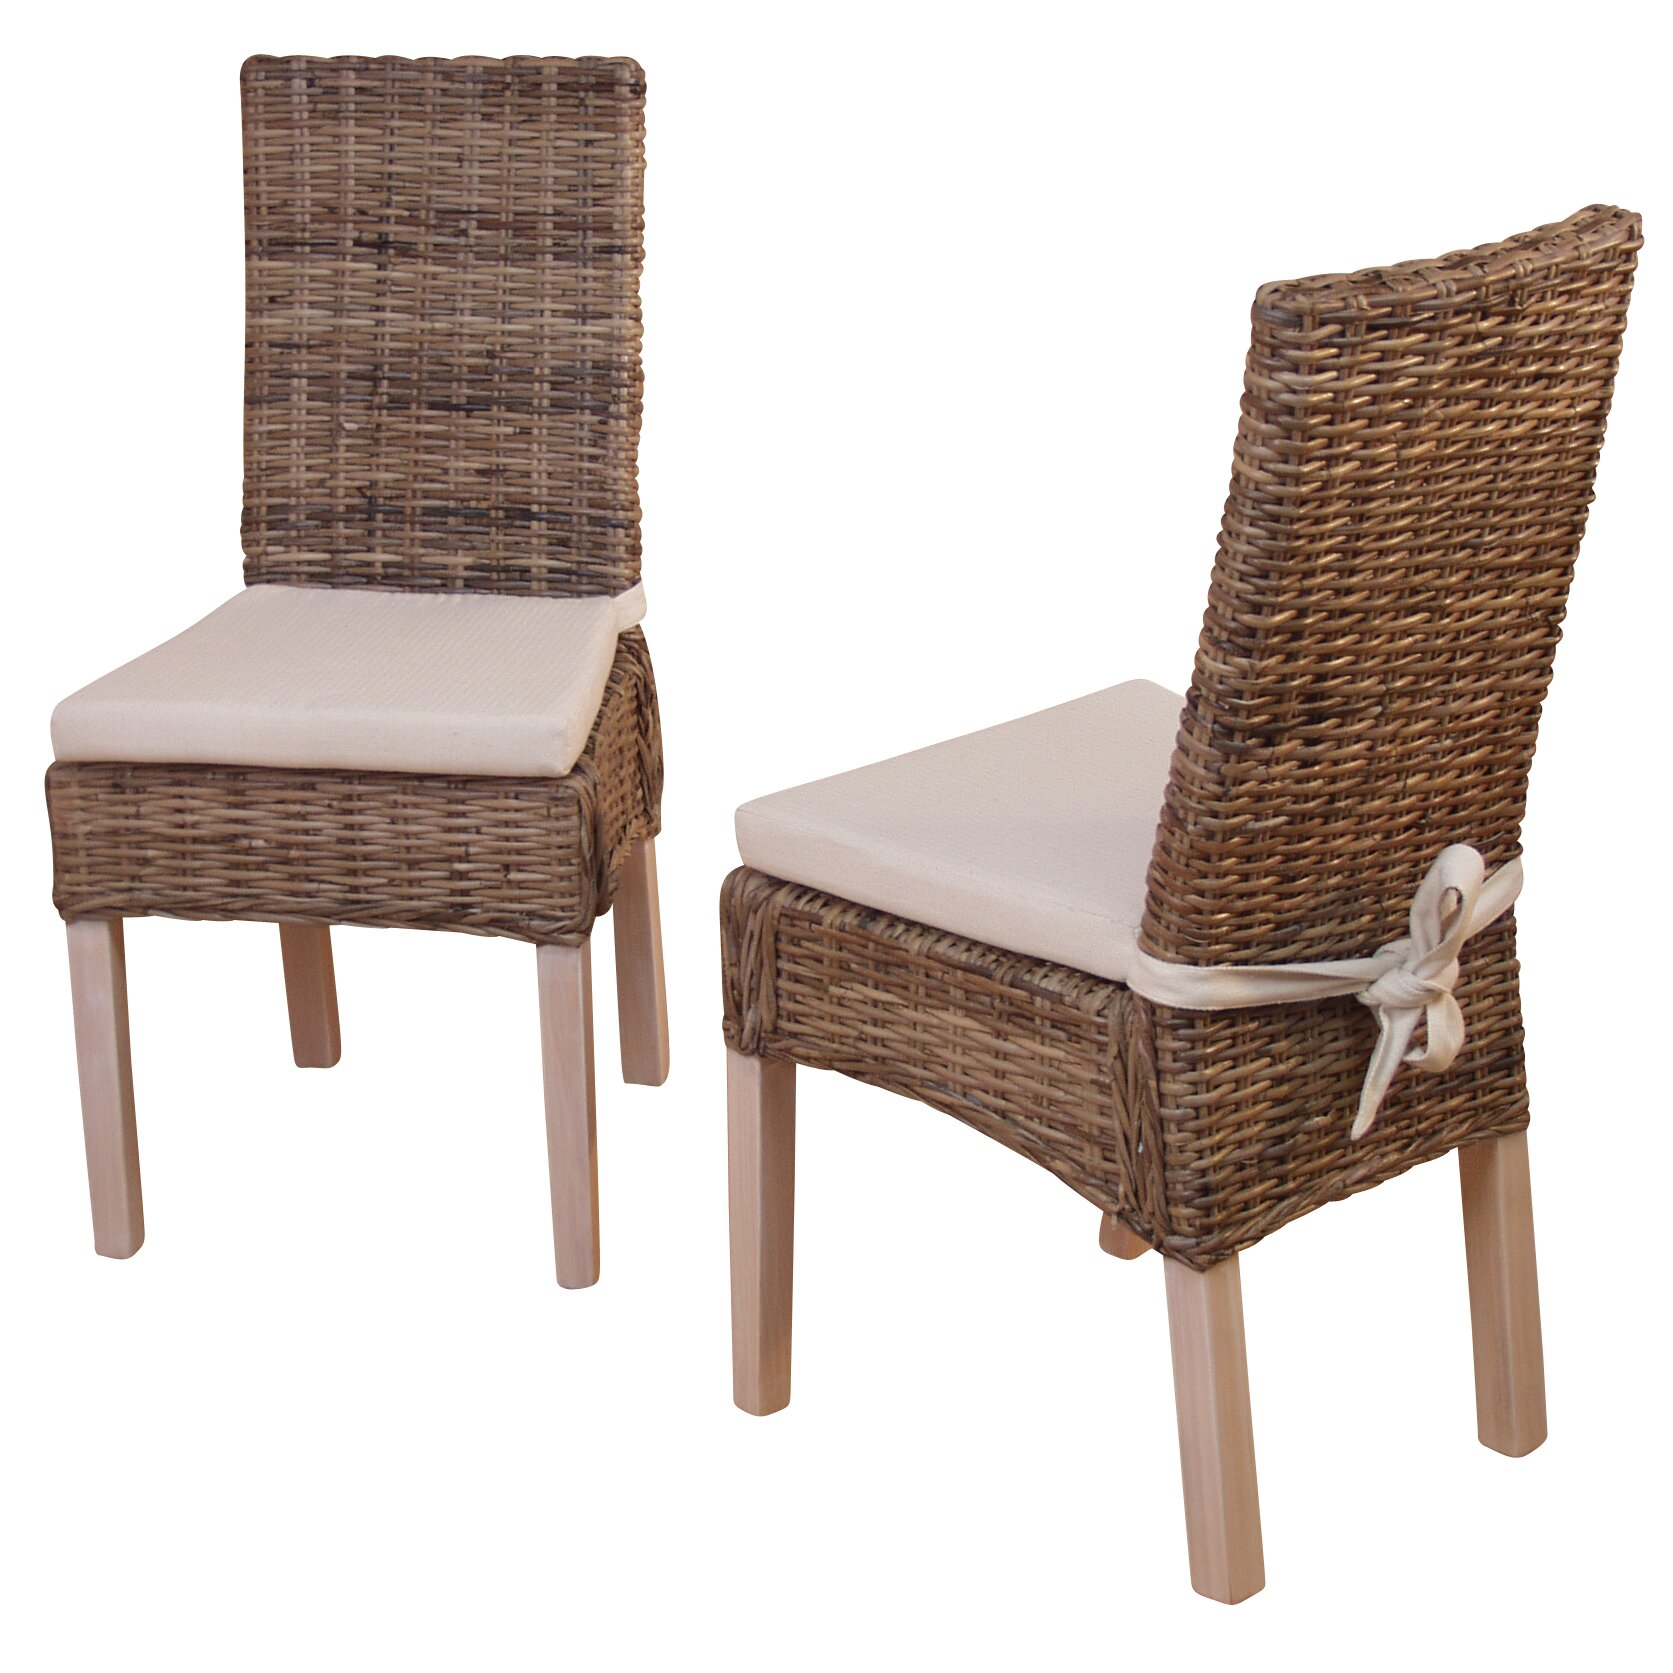 Home amp Haus Style Dining Chair Set amp Reviews Wayfaircouk : Home and Haus Style Dining Chair Set from www.wayfair.co.uk size 1673 x 1673 jpeg 434kB